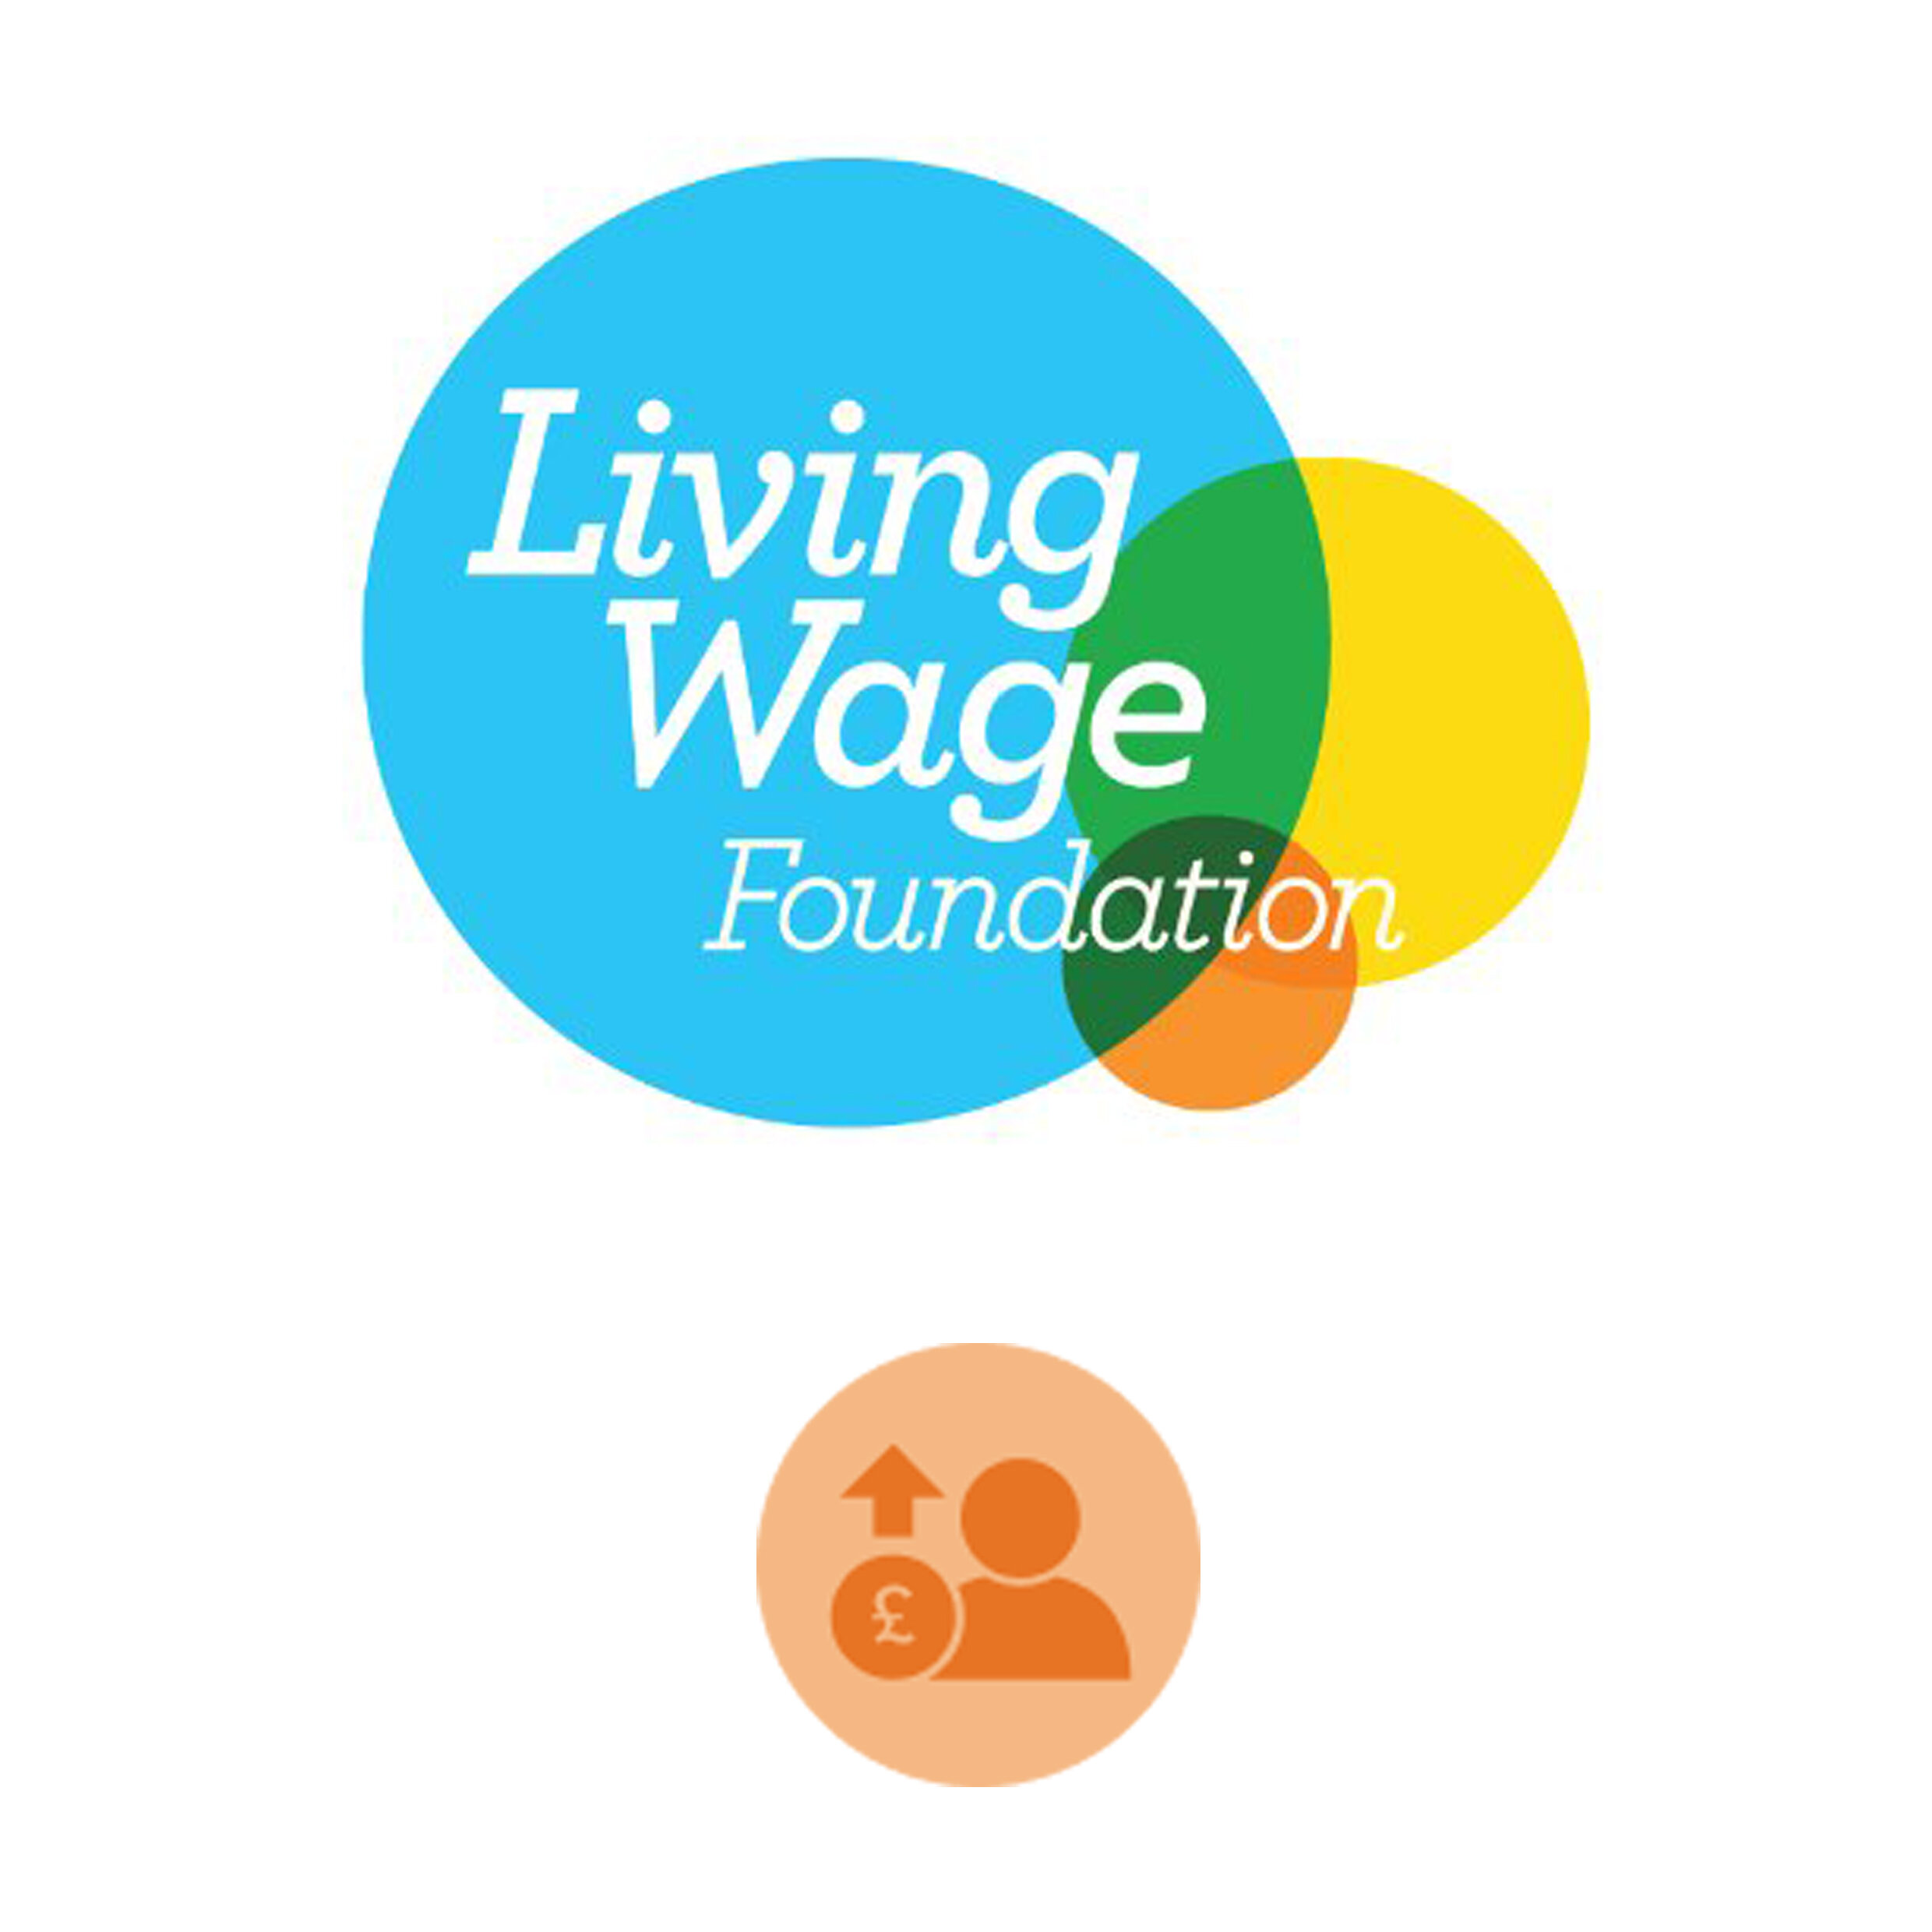 Living Wage Foundation - When it comes to advocating for a fairer pay for low-income workers, the Living Wage Foundation are global leaders. One of the twelve 'values' you can can select from on CoGo is 'Living Wage' as we passionately believe that all staff in the U.K. deserve a fair day's pay for a hard day's work.This is why CoGo has partnered with the Living Wage Foundation to help you find Living Wage accredited businesses and support their commitment to paving the way for a fairer future.All Living Wage accredited businesses are now live on the CoGo app so you can make sure your next caffeine fix is one made by a worker who is paid fairly.